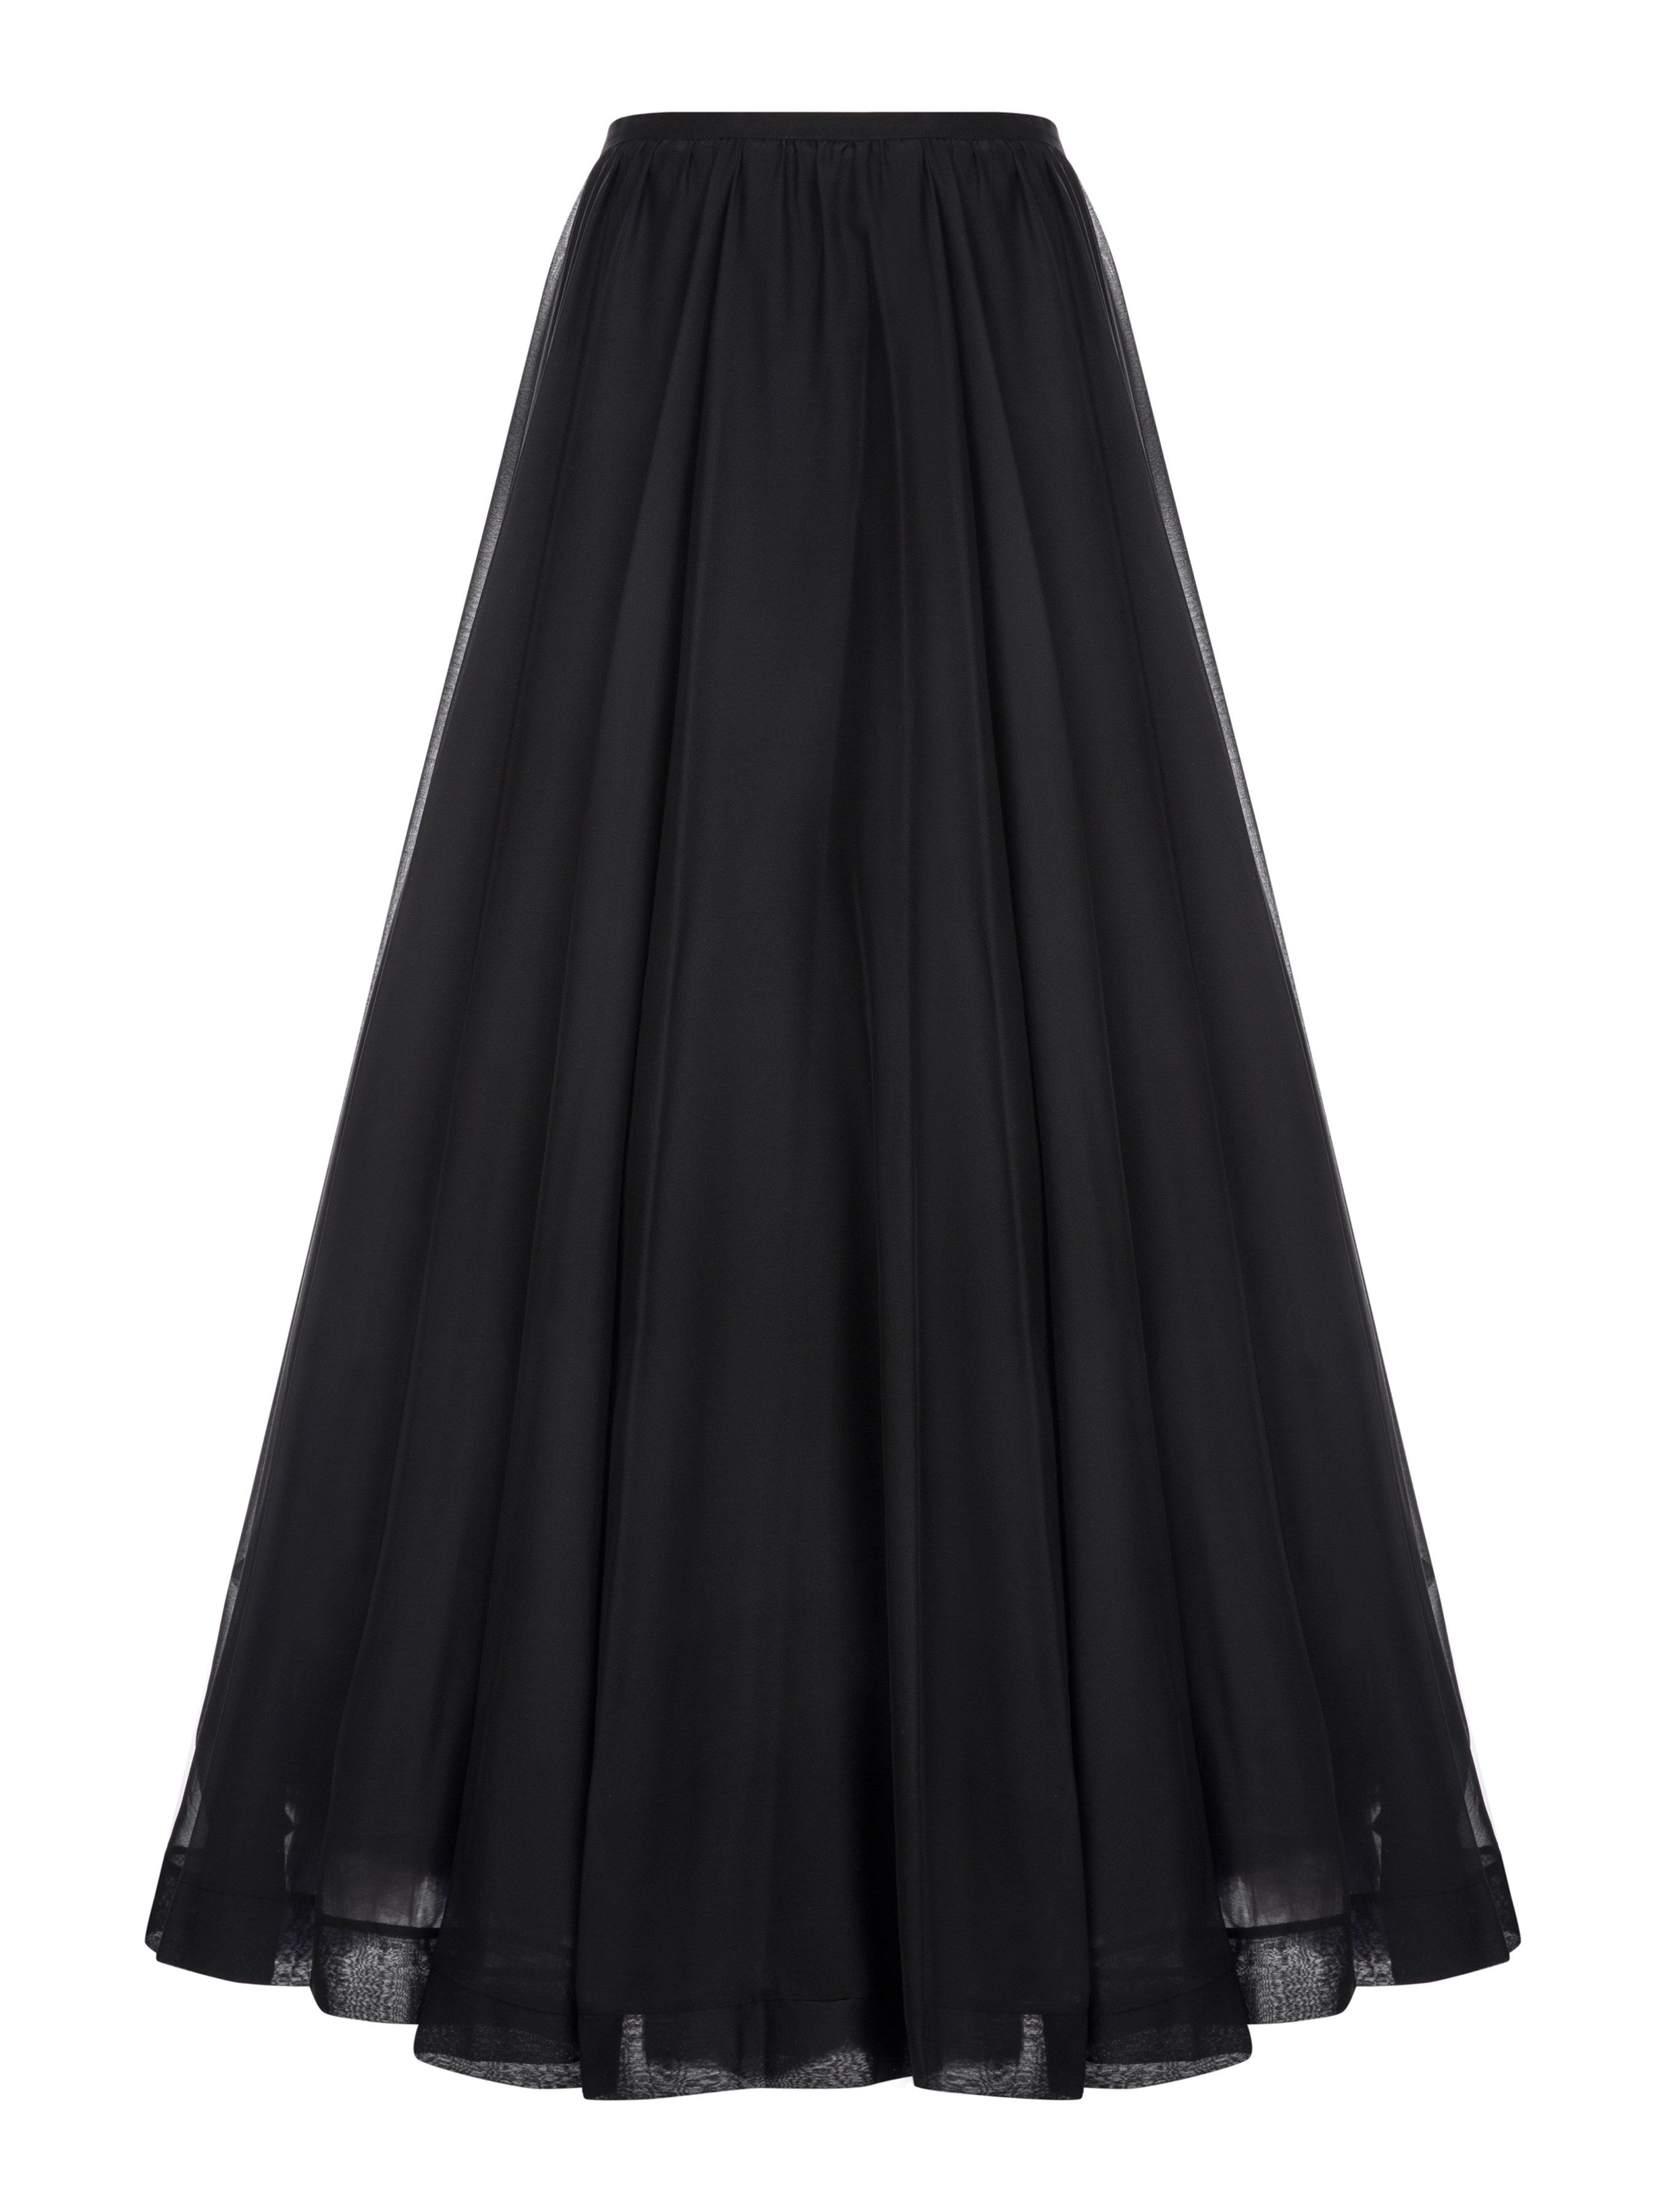 Muslima Wear Black Skirt